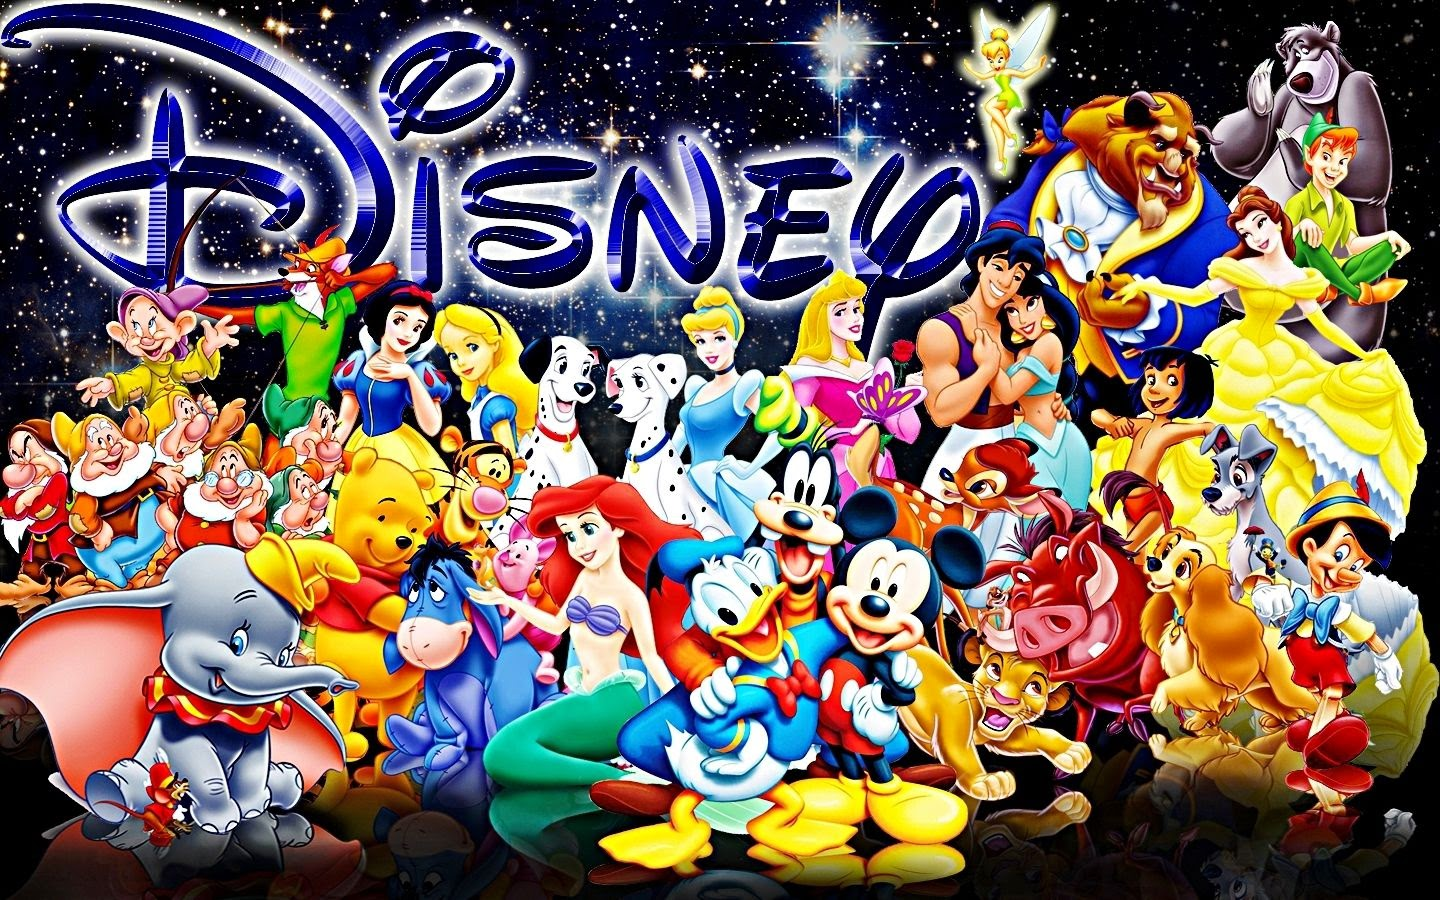 Disney HD Wallpapers Download HD WALLPAERS 4U FREE DOWNLOAD 1440x900